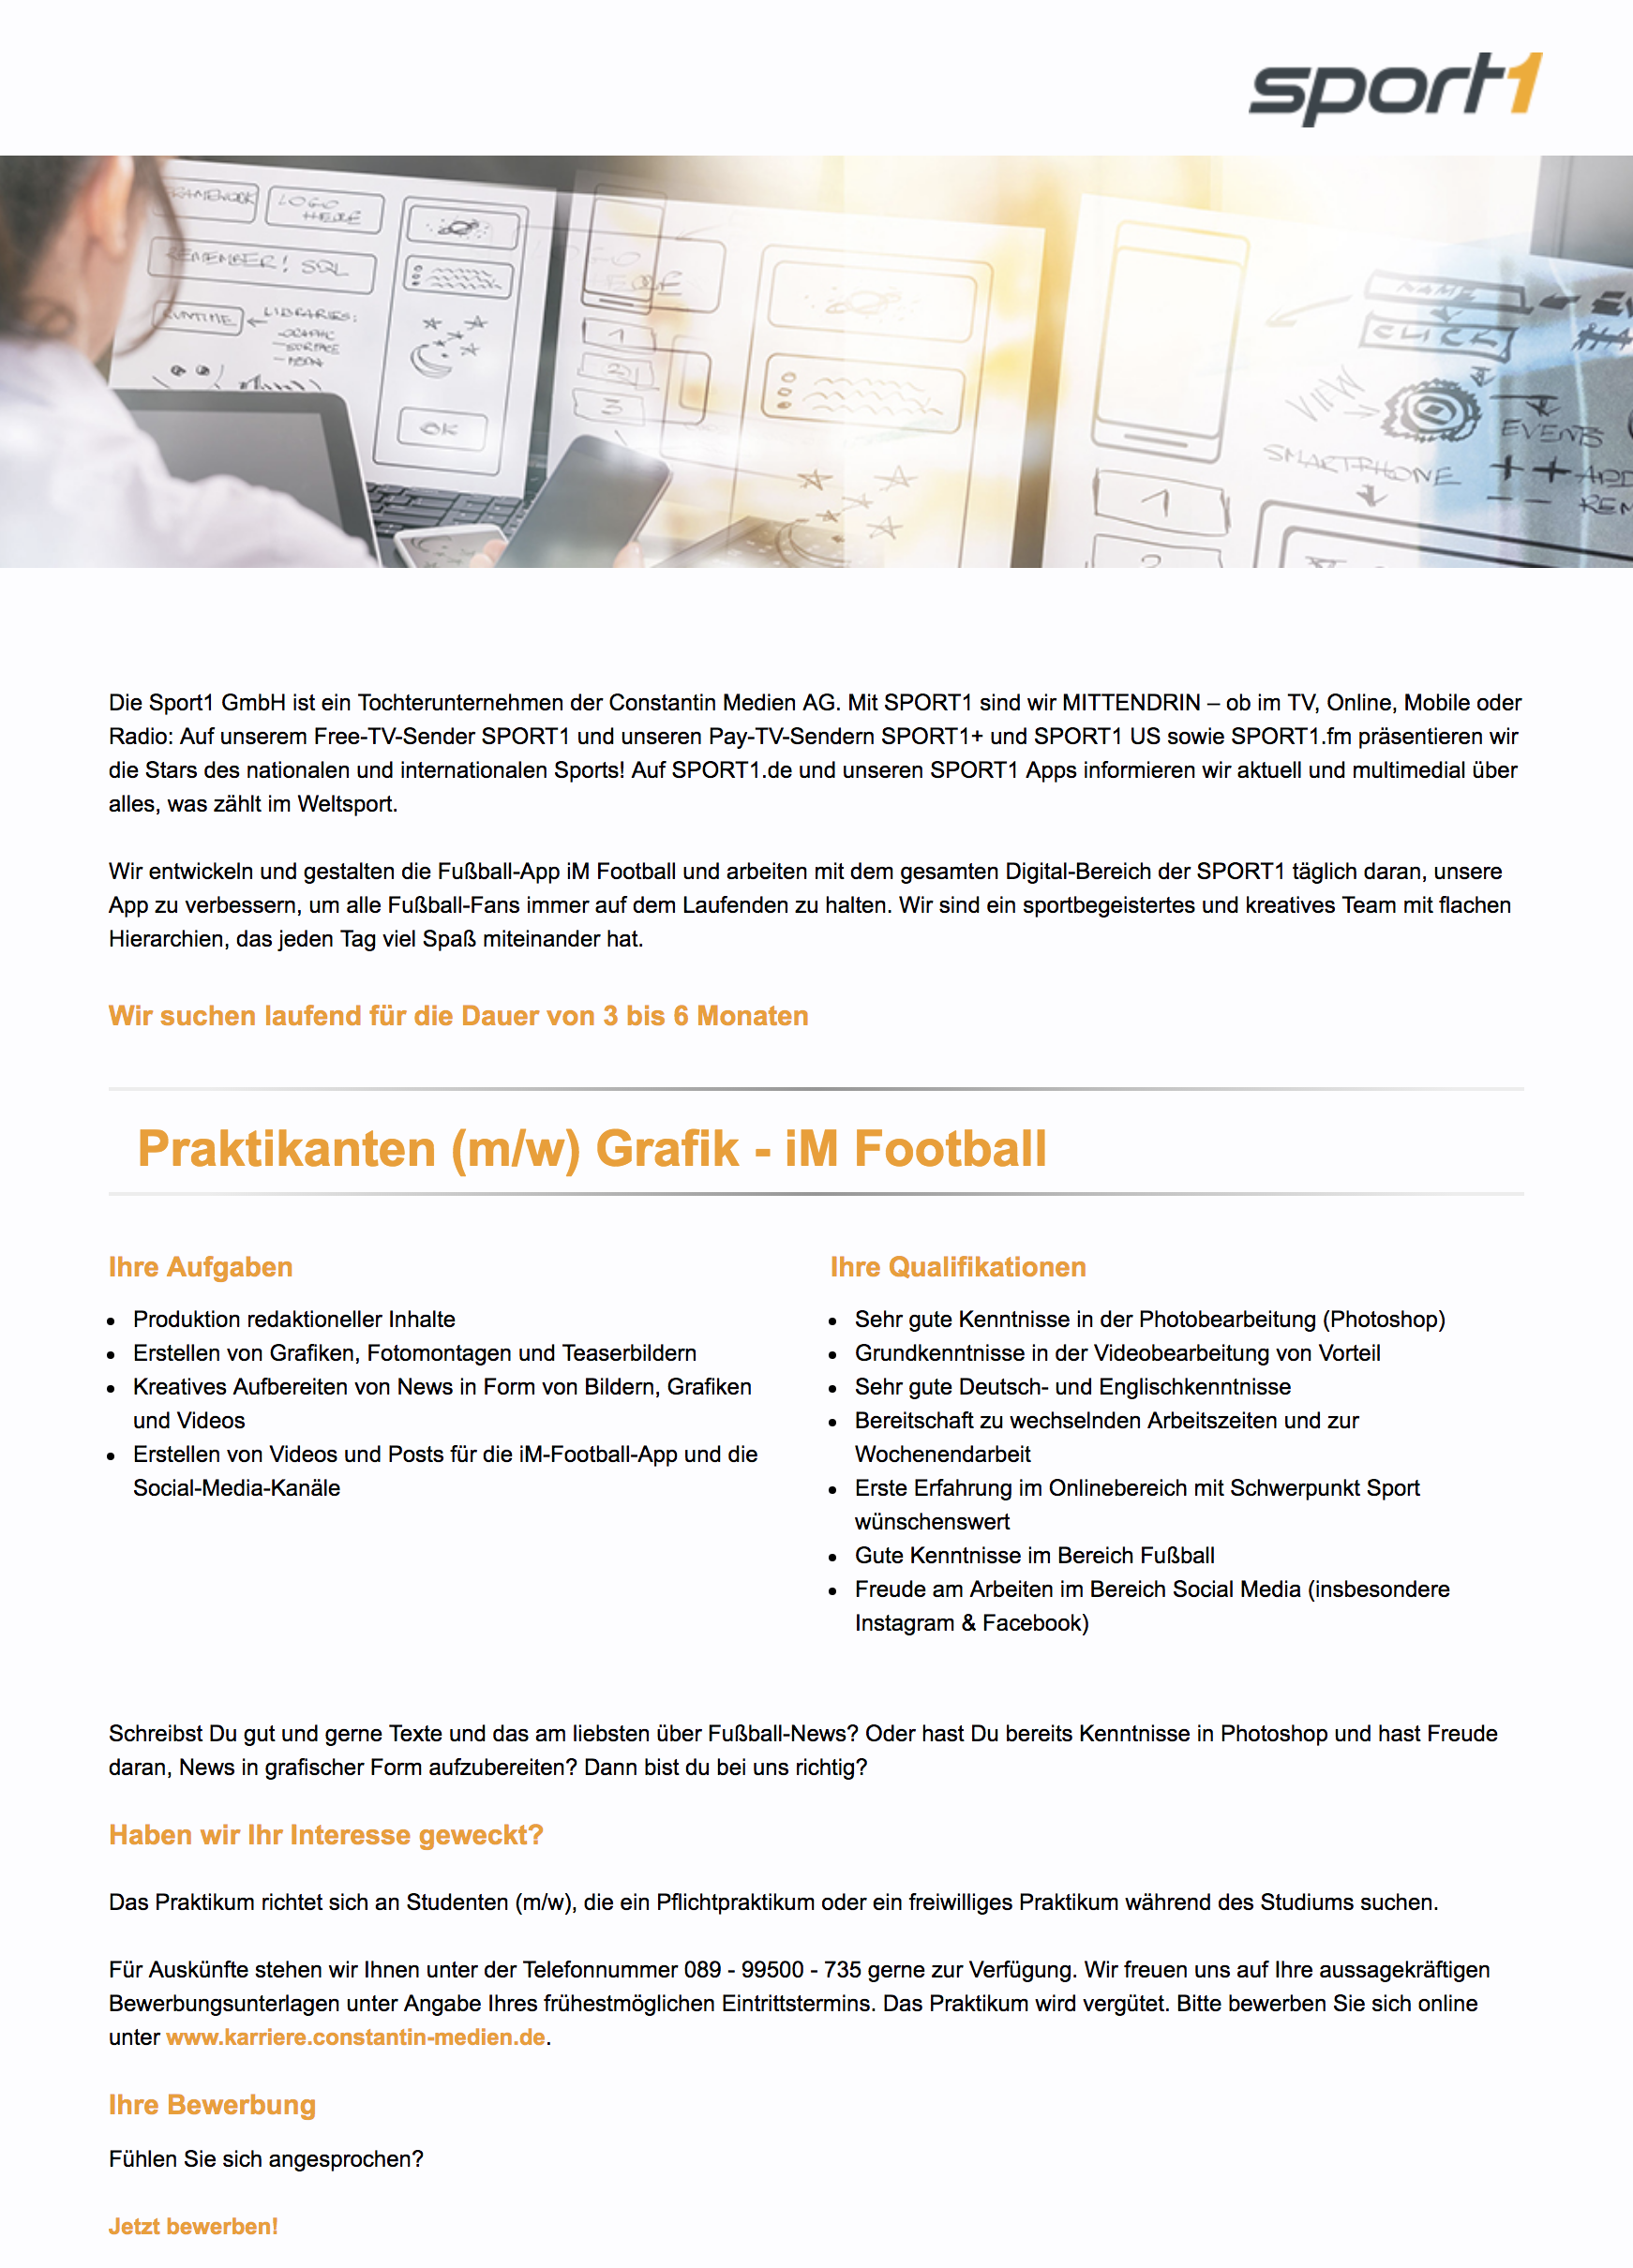 Praktikanten (m/w) Grafik - iM Football